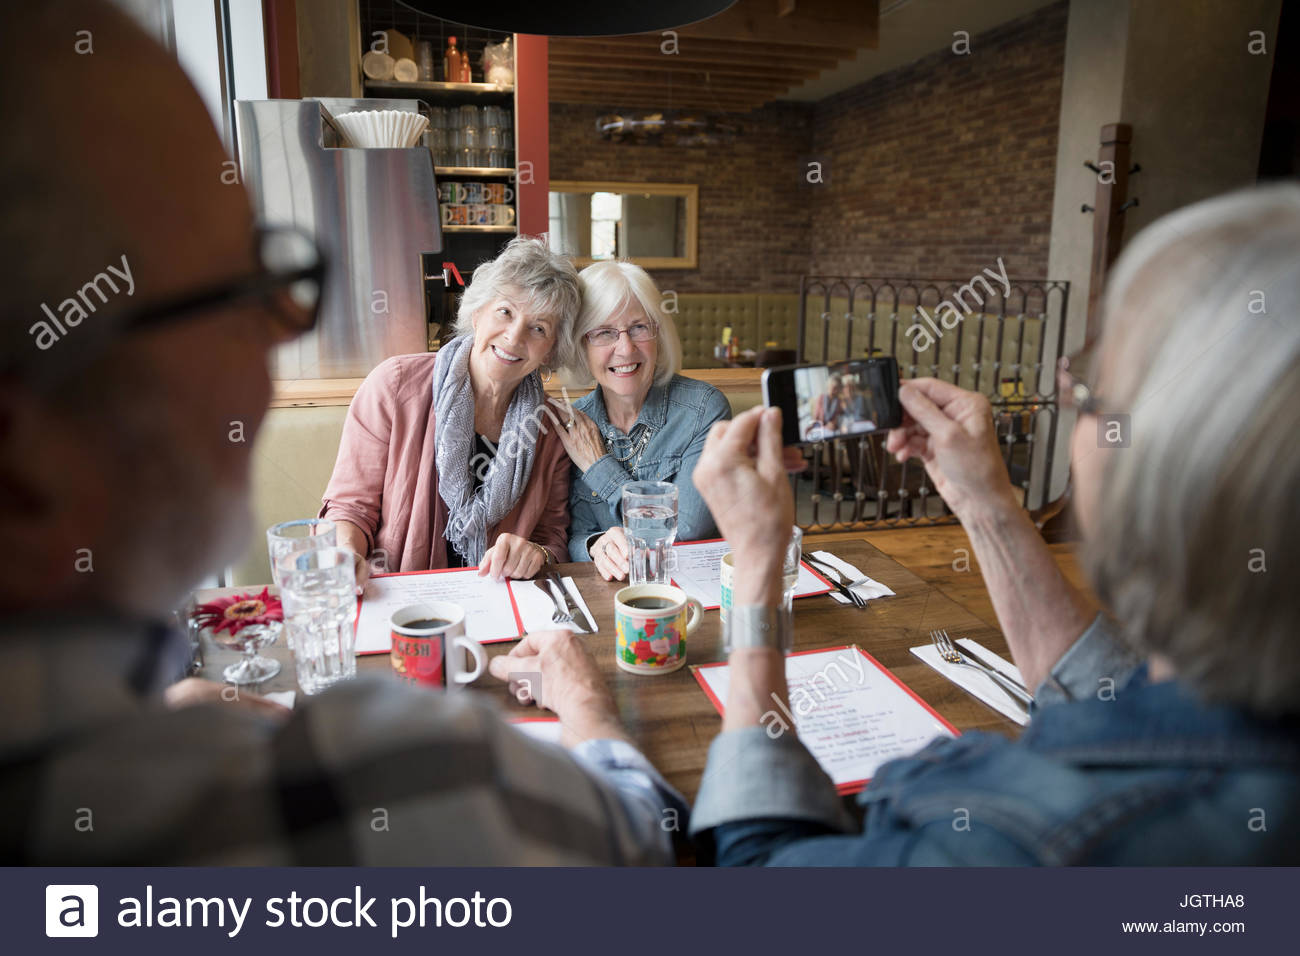 Senior woman photographing friends with camera phone in diner booth - Stock Image